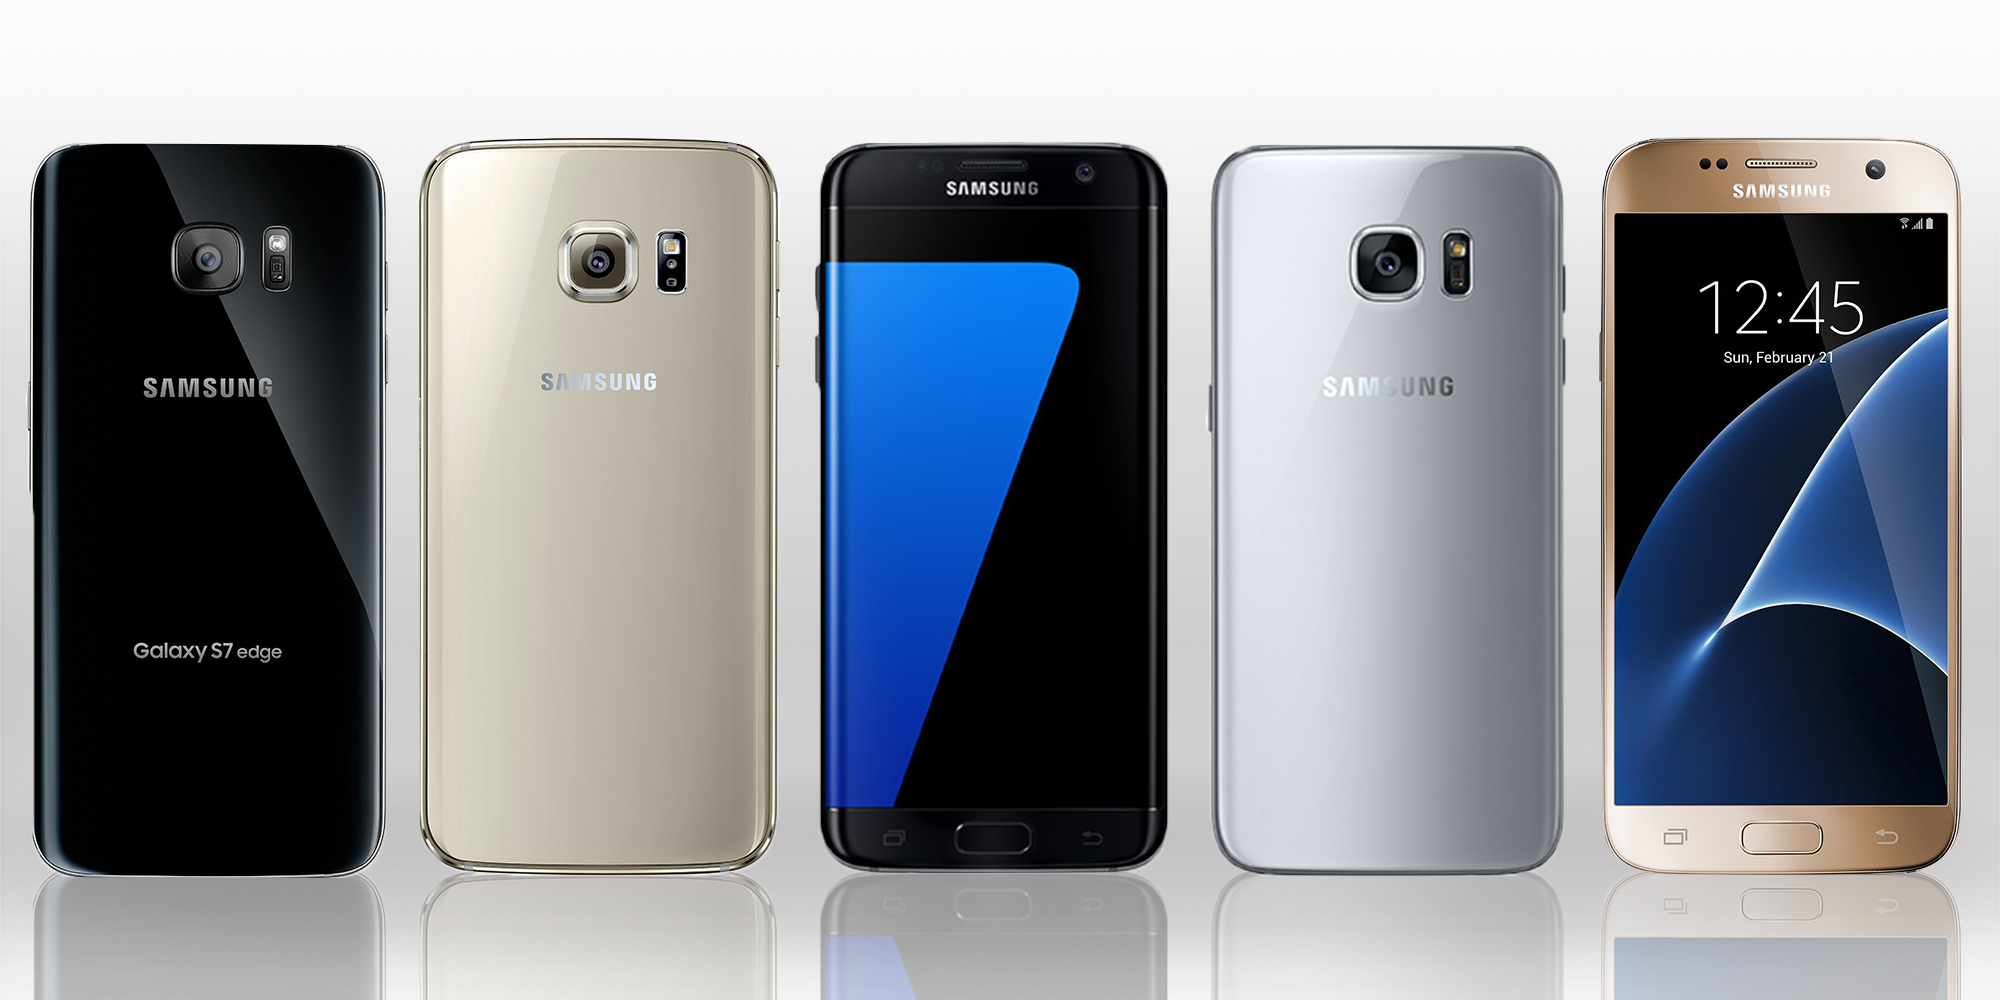 9 Best Samsung Phones of 2017 - Top Rated Samsung Galaxy Smartphone Reviews